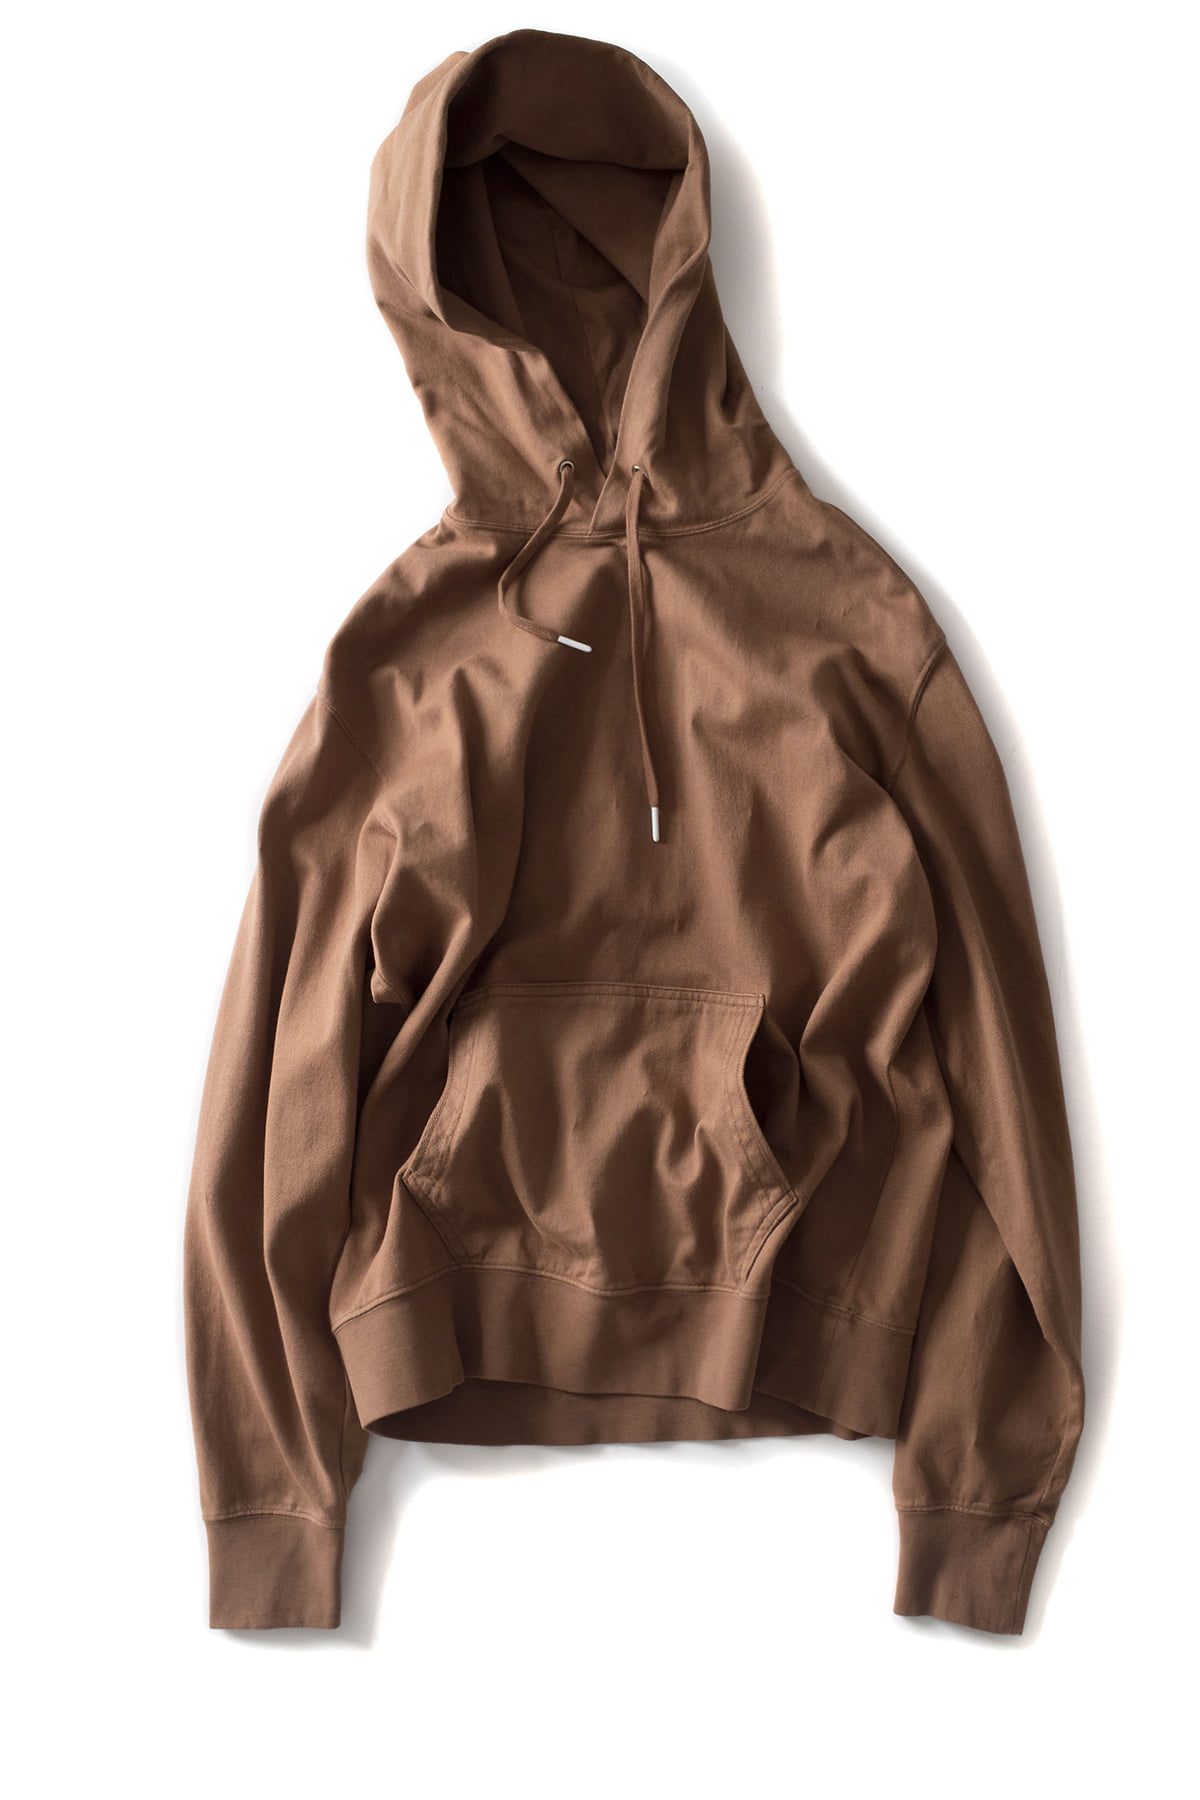 AECA WHITE x IAMSHOP Exclusive : Pullover Hoodie (Brown)